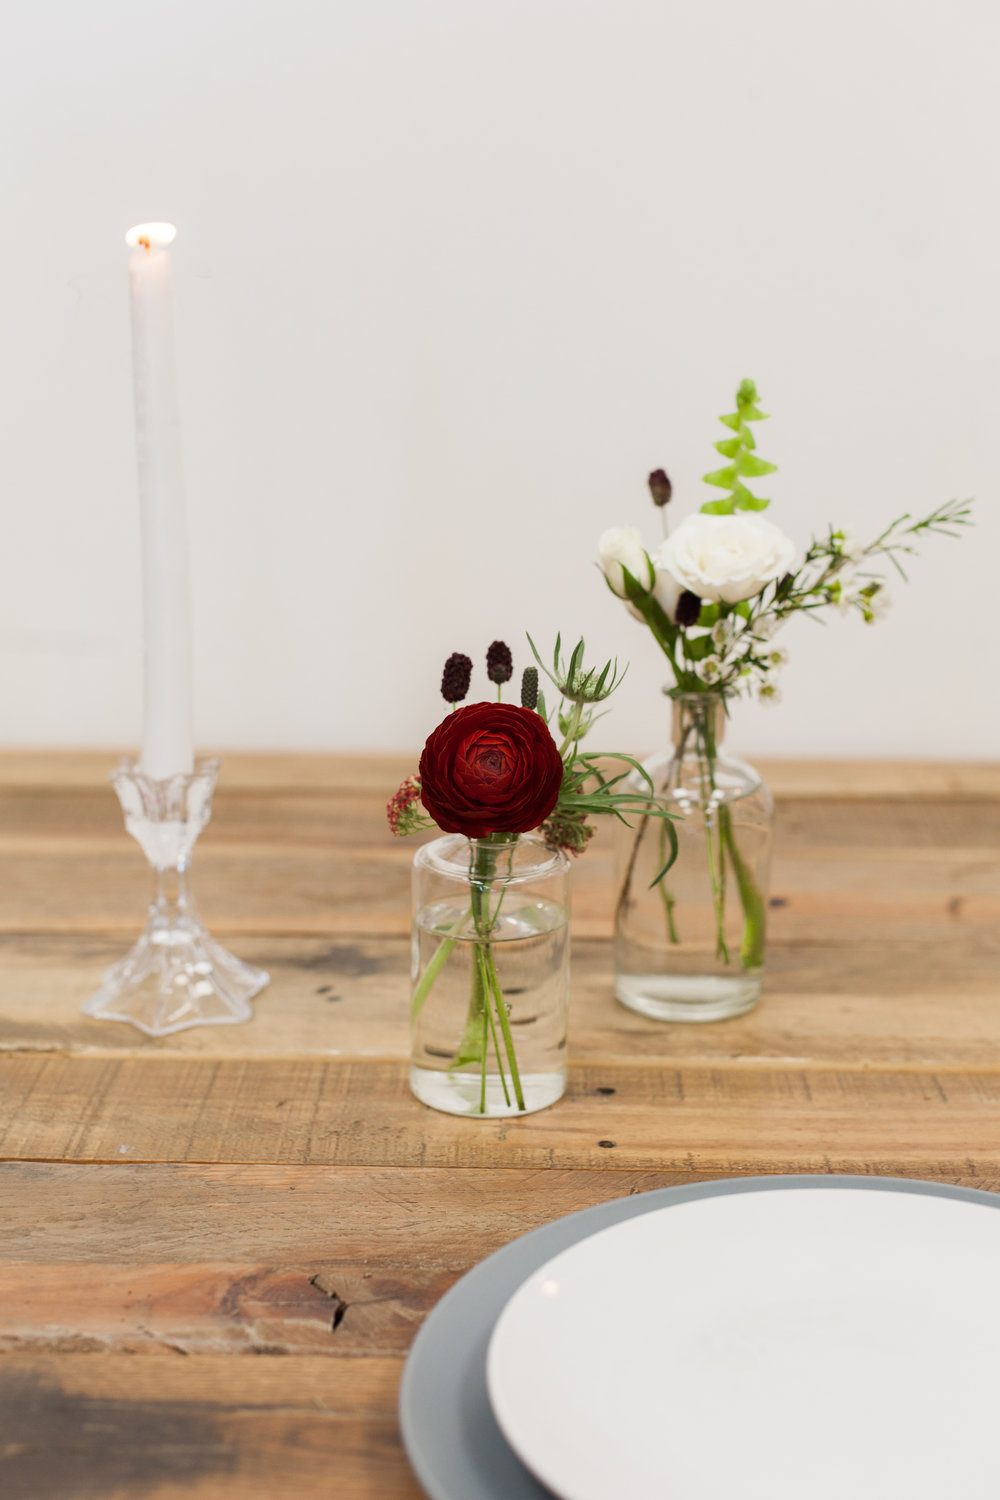 Bud Vase - $15 - We recommend bud vases for any extra spaces that need a touch of floral; think about your bar, card table, cake table, or guest book table. We also love a trio of bud vases as a simple, minimal centerpiece.